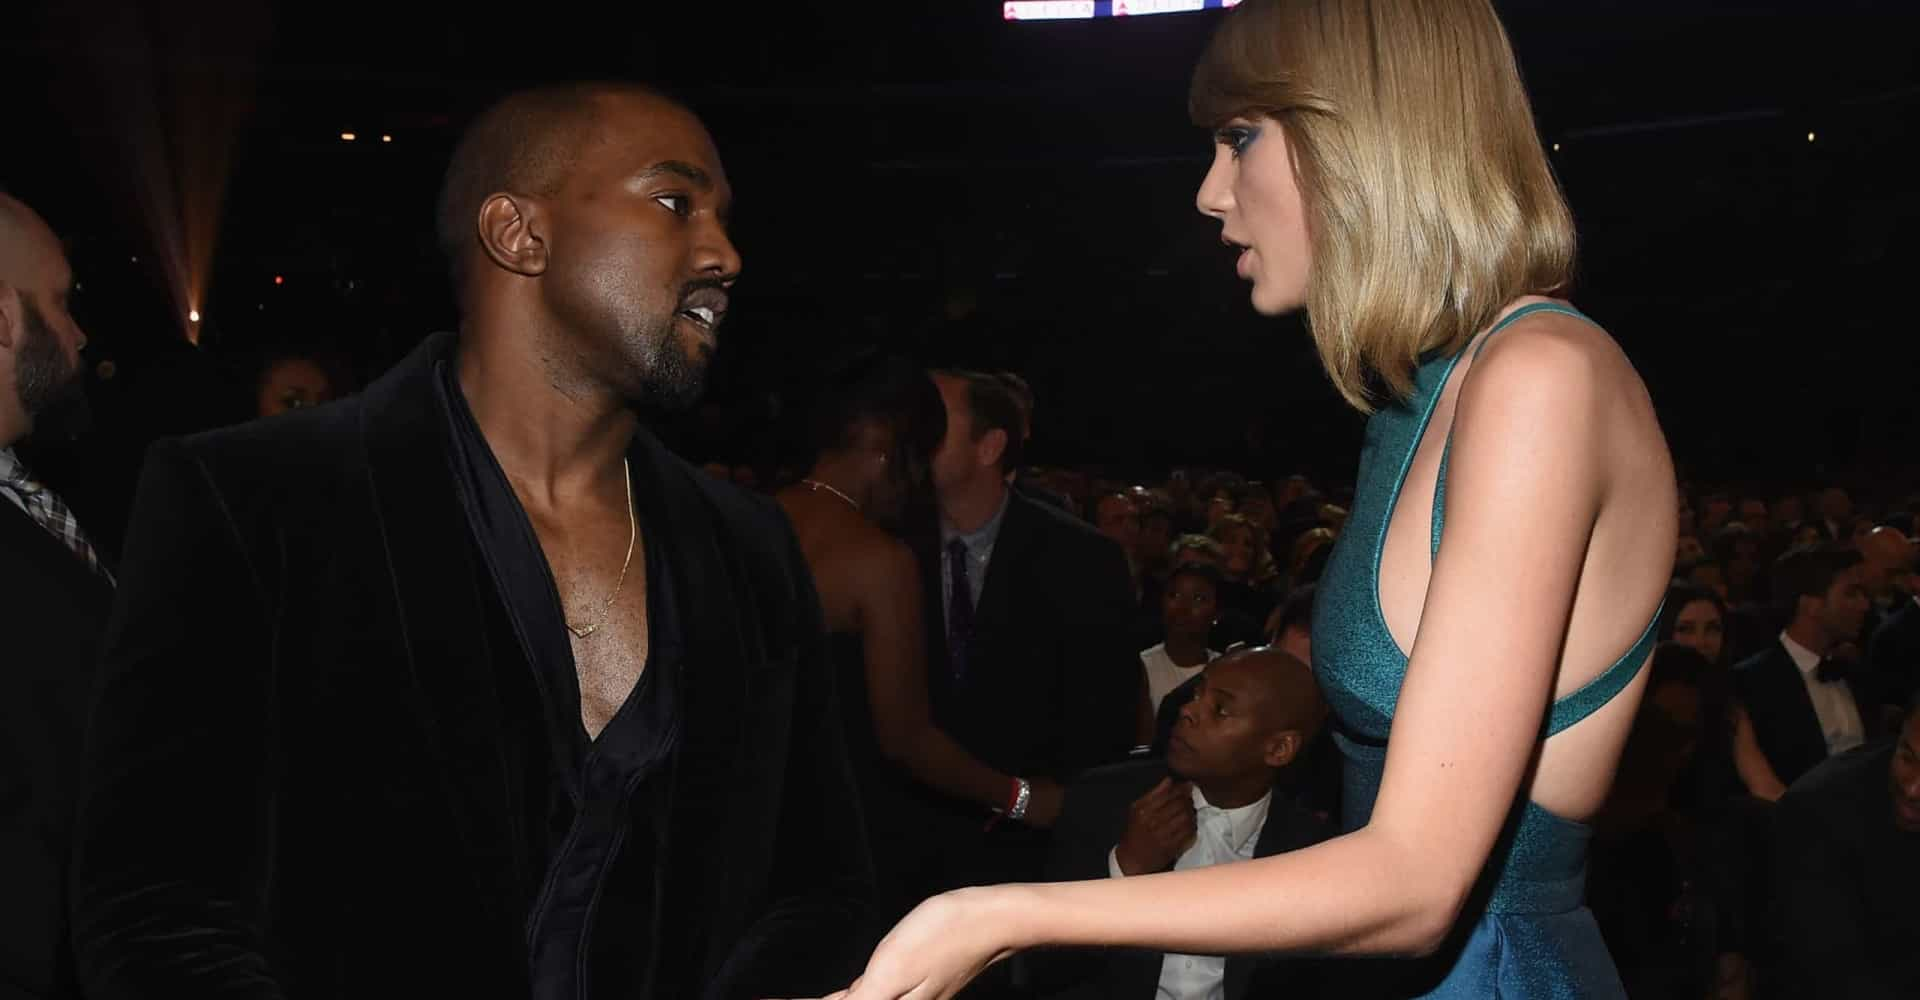 Taylor Swift's feud with Kanye West reignites, and more bad blood